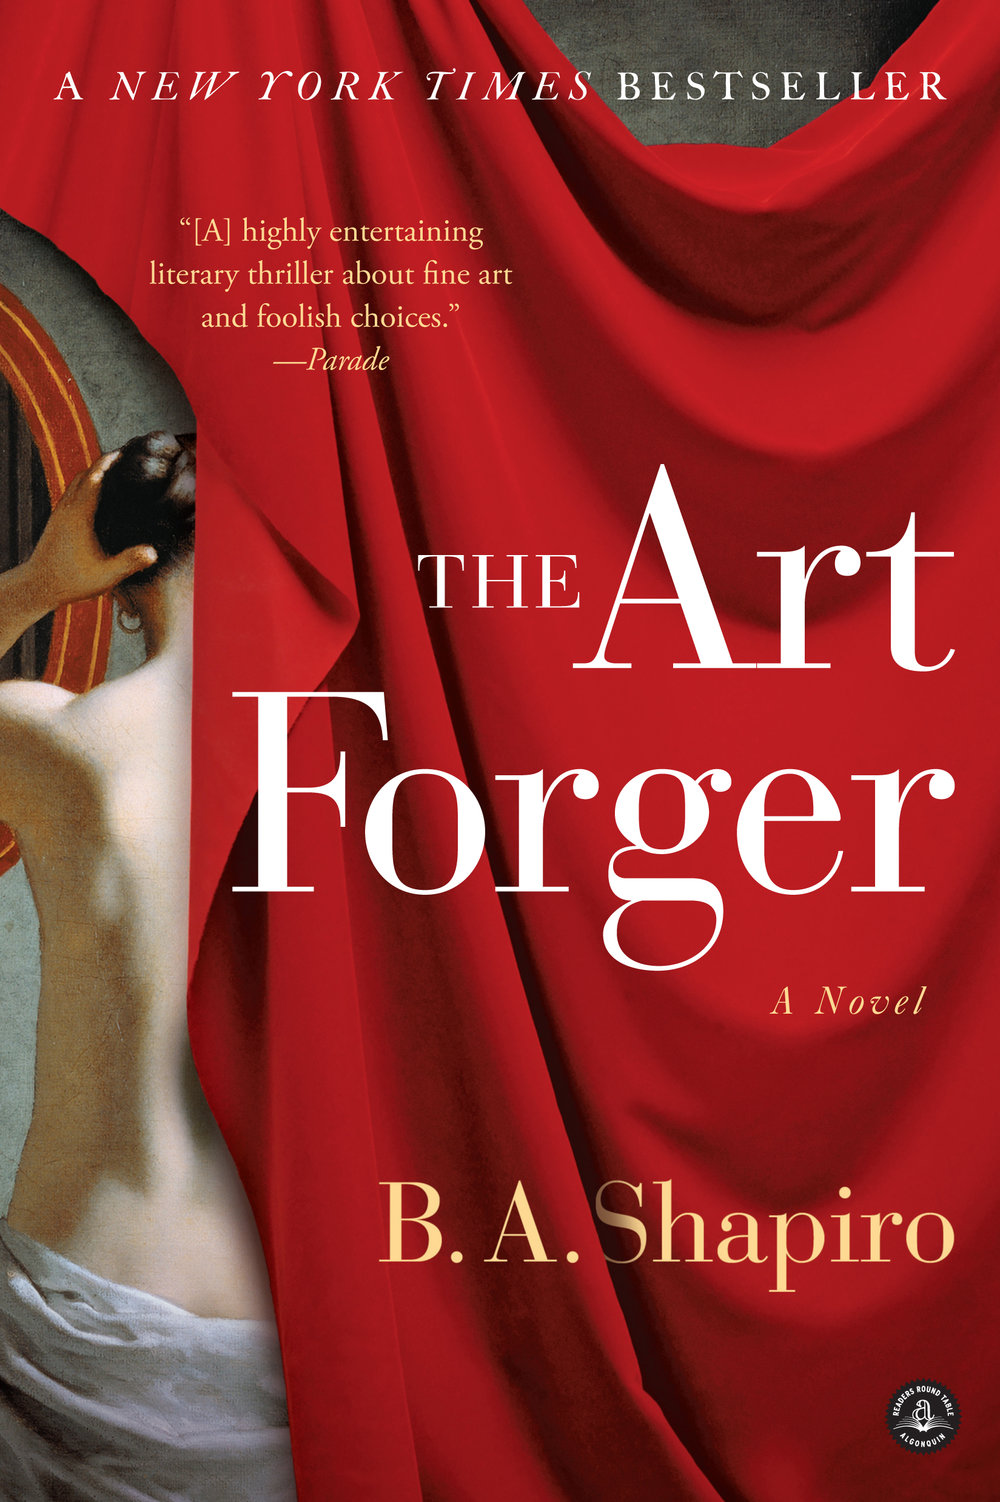 5 Books to Read About Art and Artists 1) The Art Forger by BA Shapiro